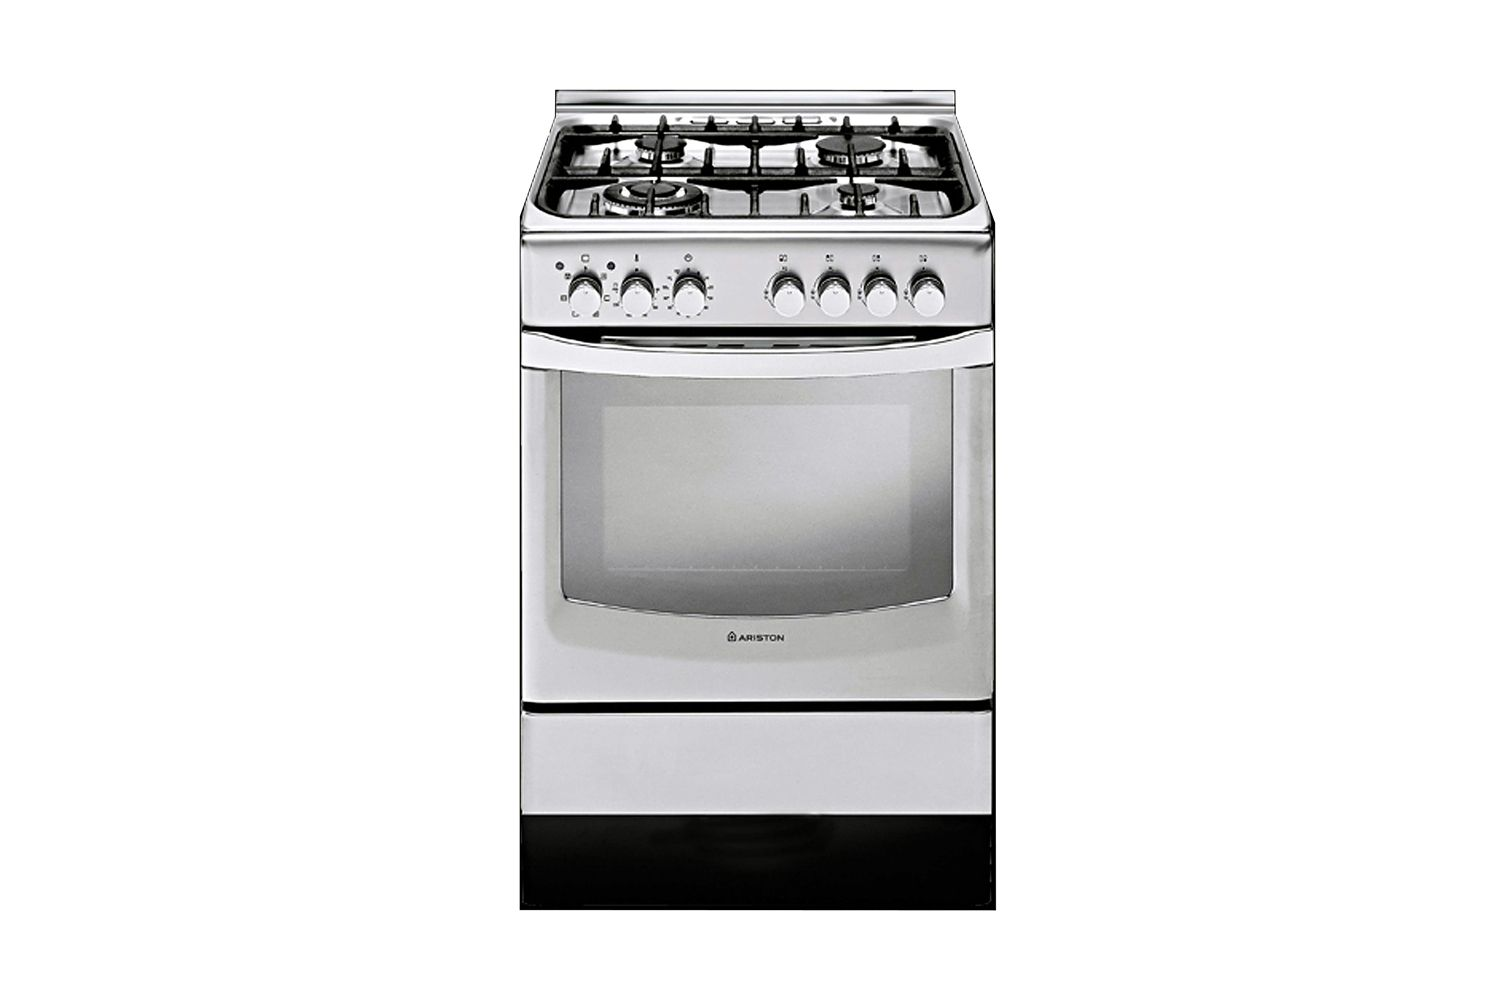 Ariston 60cm Freestanding Oven with Gas Cooktop   Bach   Pinterest ...